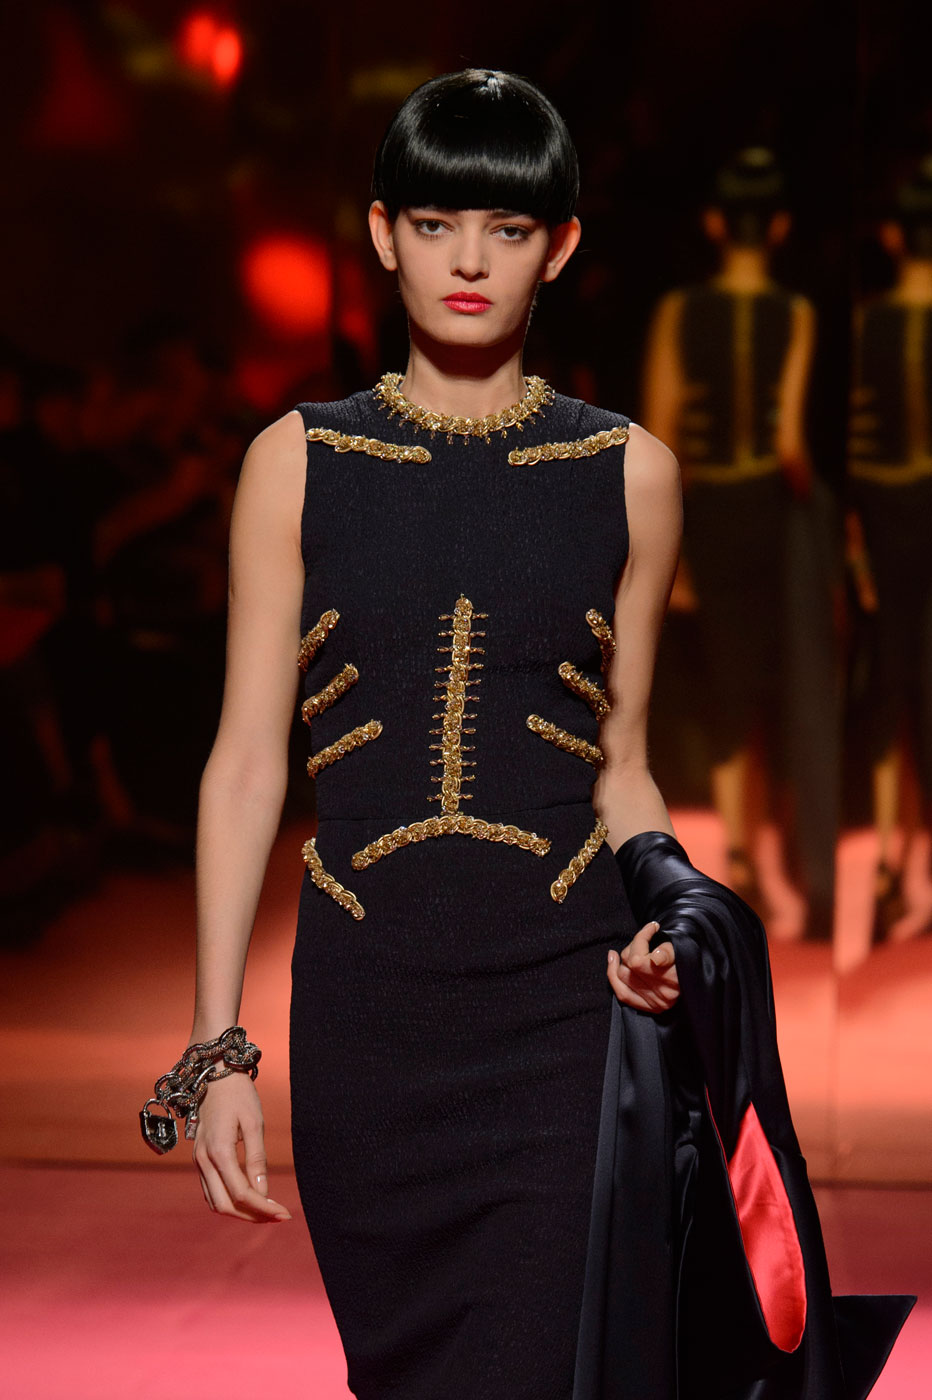 Schiaparelli-fashion-runway-show-haute-couture-paris-spring-summer-2015-the-impression-16